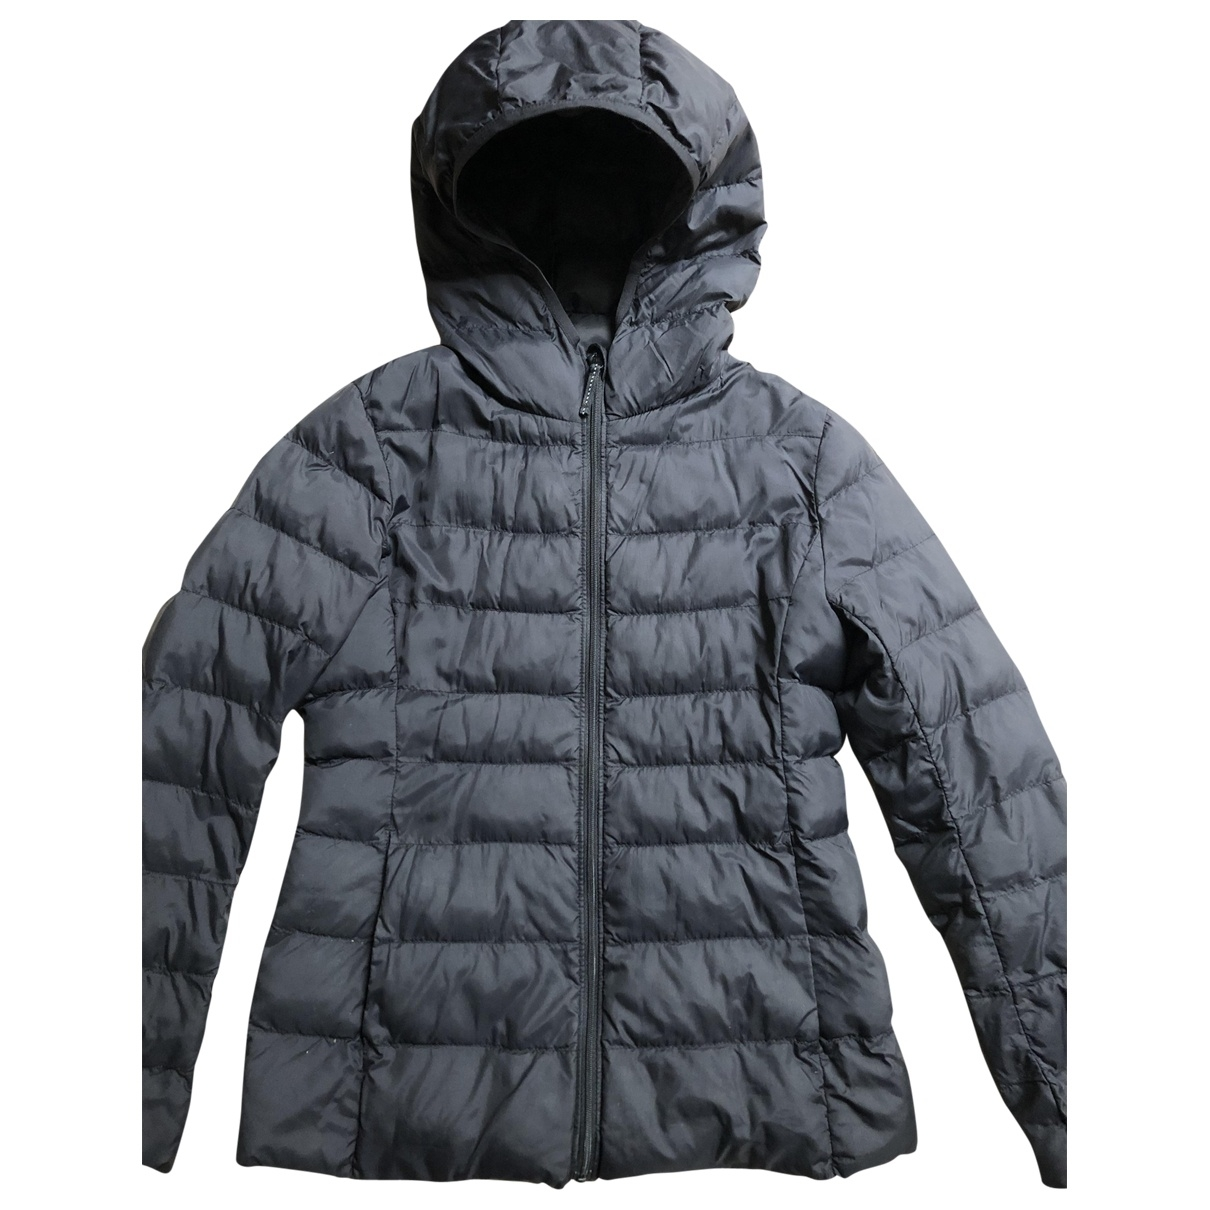 Uniqlo \N Black jacket & coat for Kids 10 years - up to 142cm FR